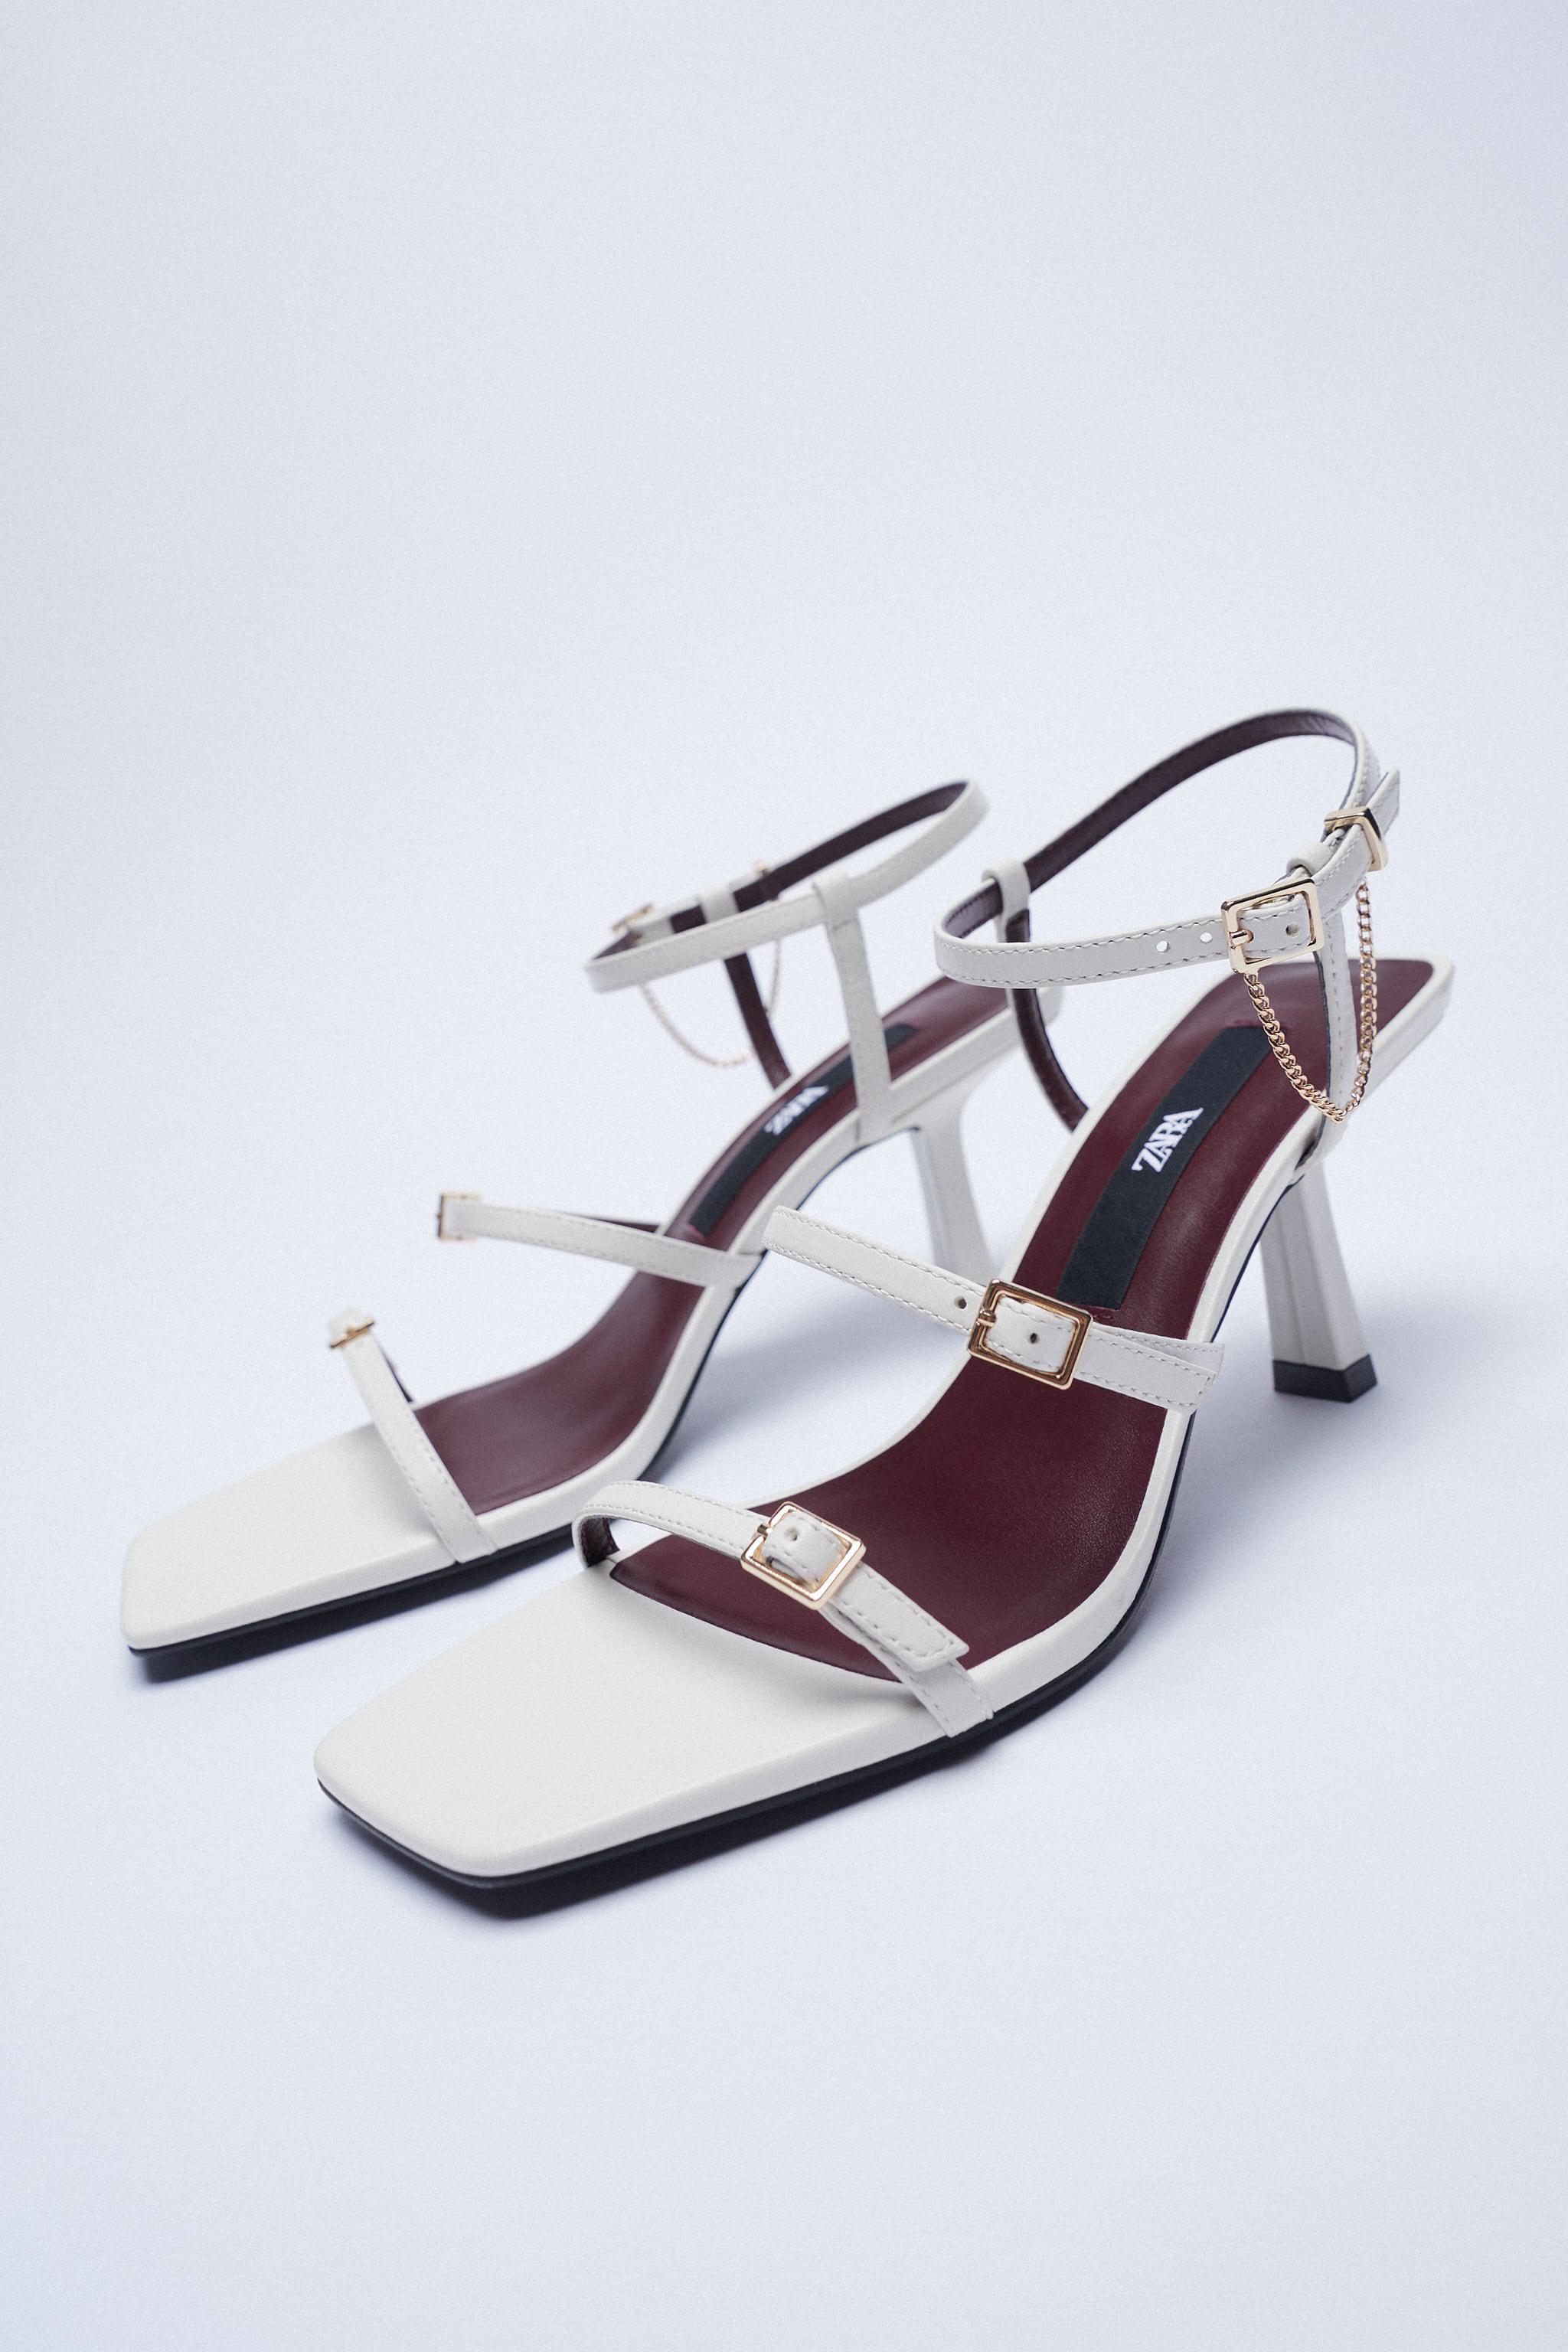 LEATHER HIGH HEEL STRAPPY SANDALS WITH BUCKLES 6